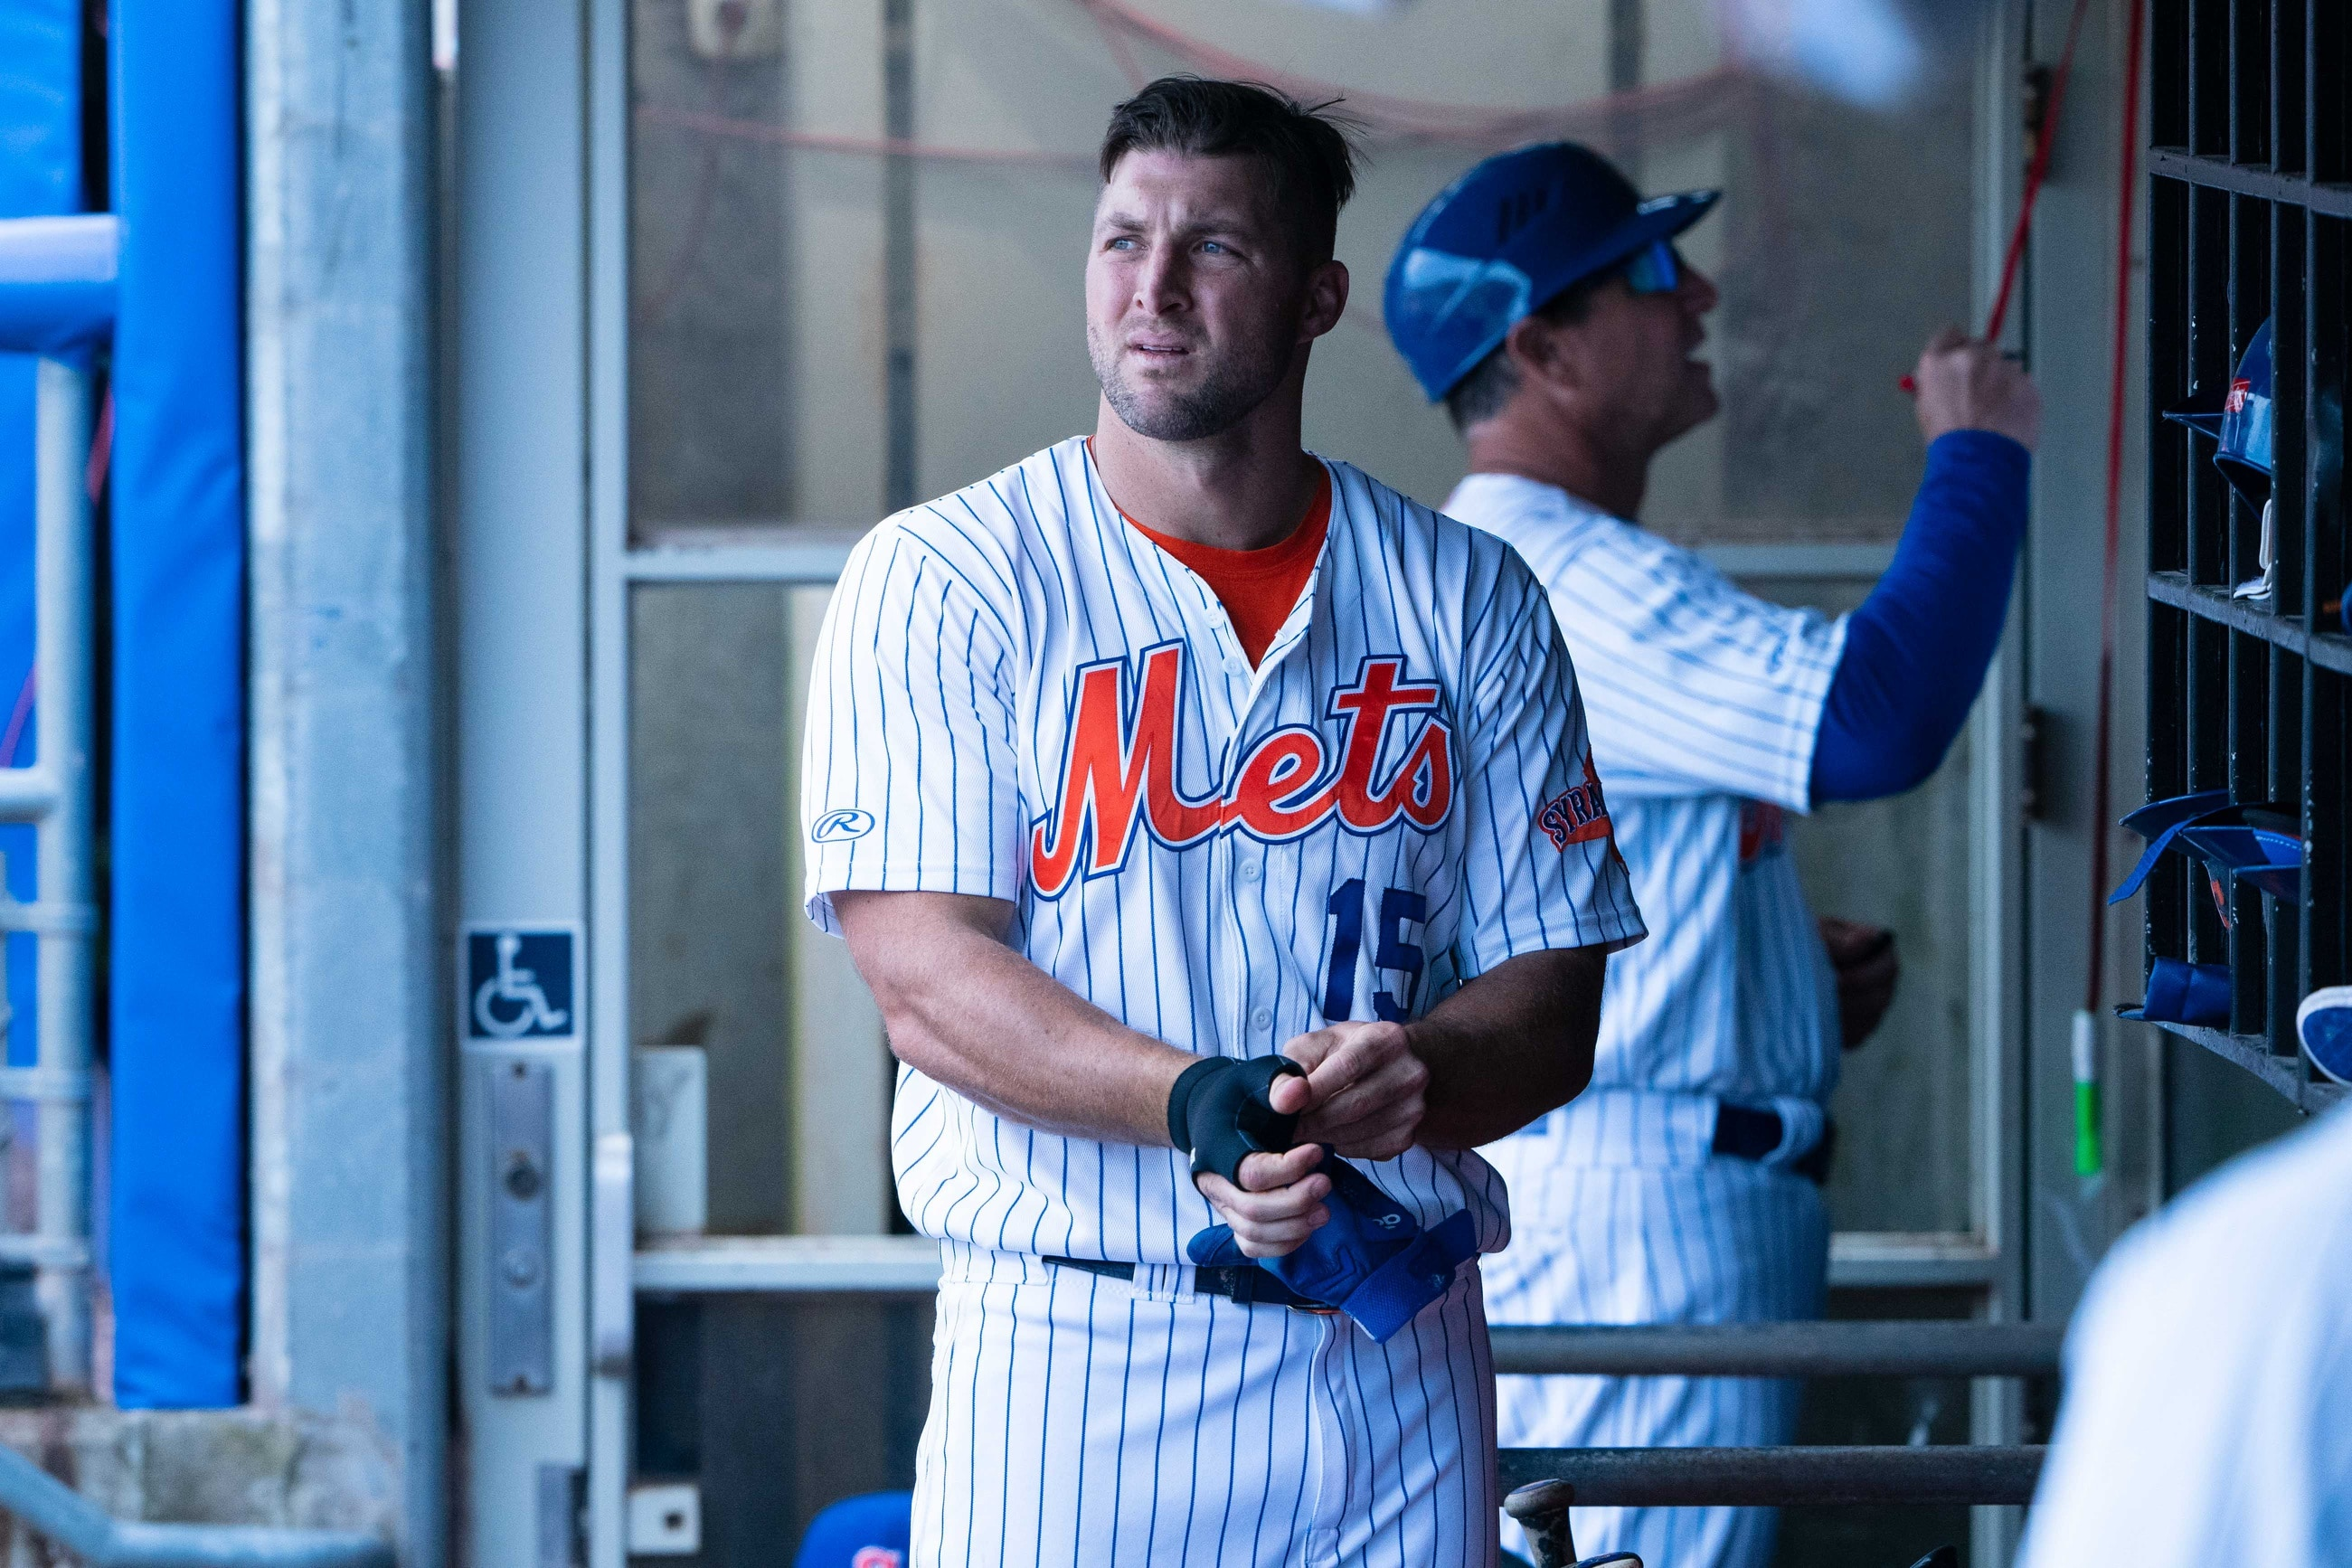 Report: Finger injury ends Tim Tebow's minor-league season